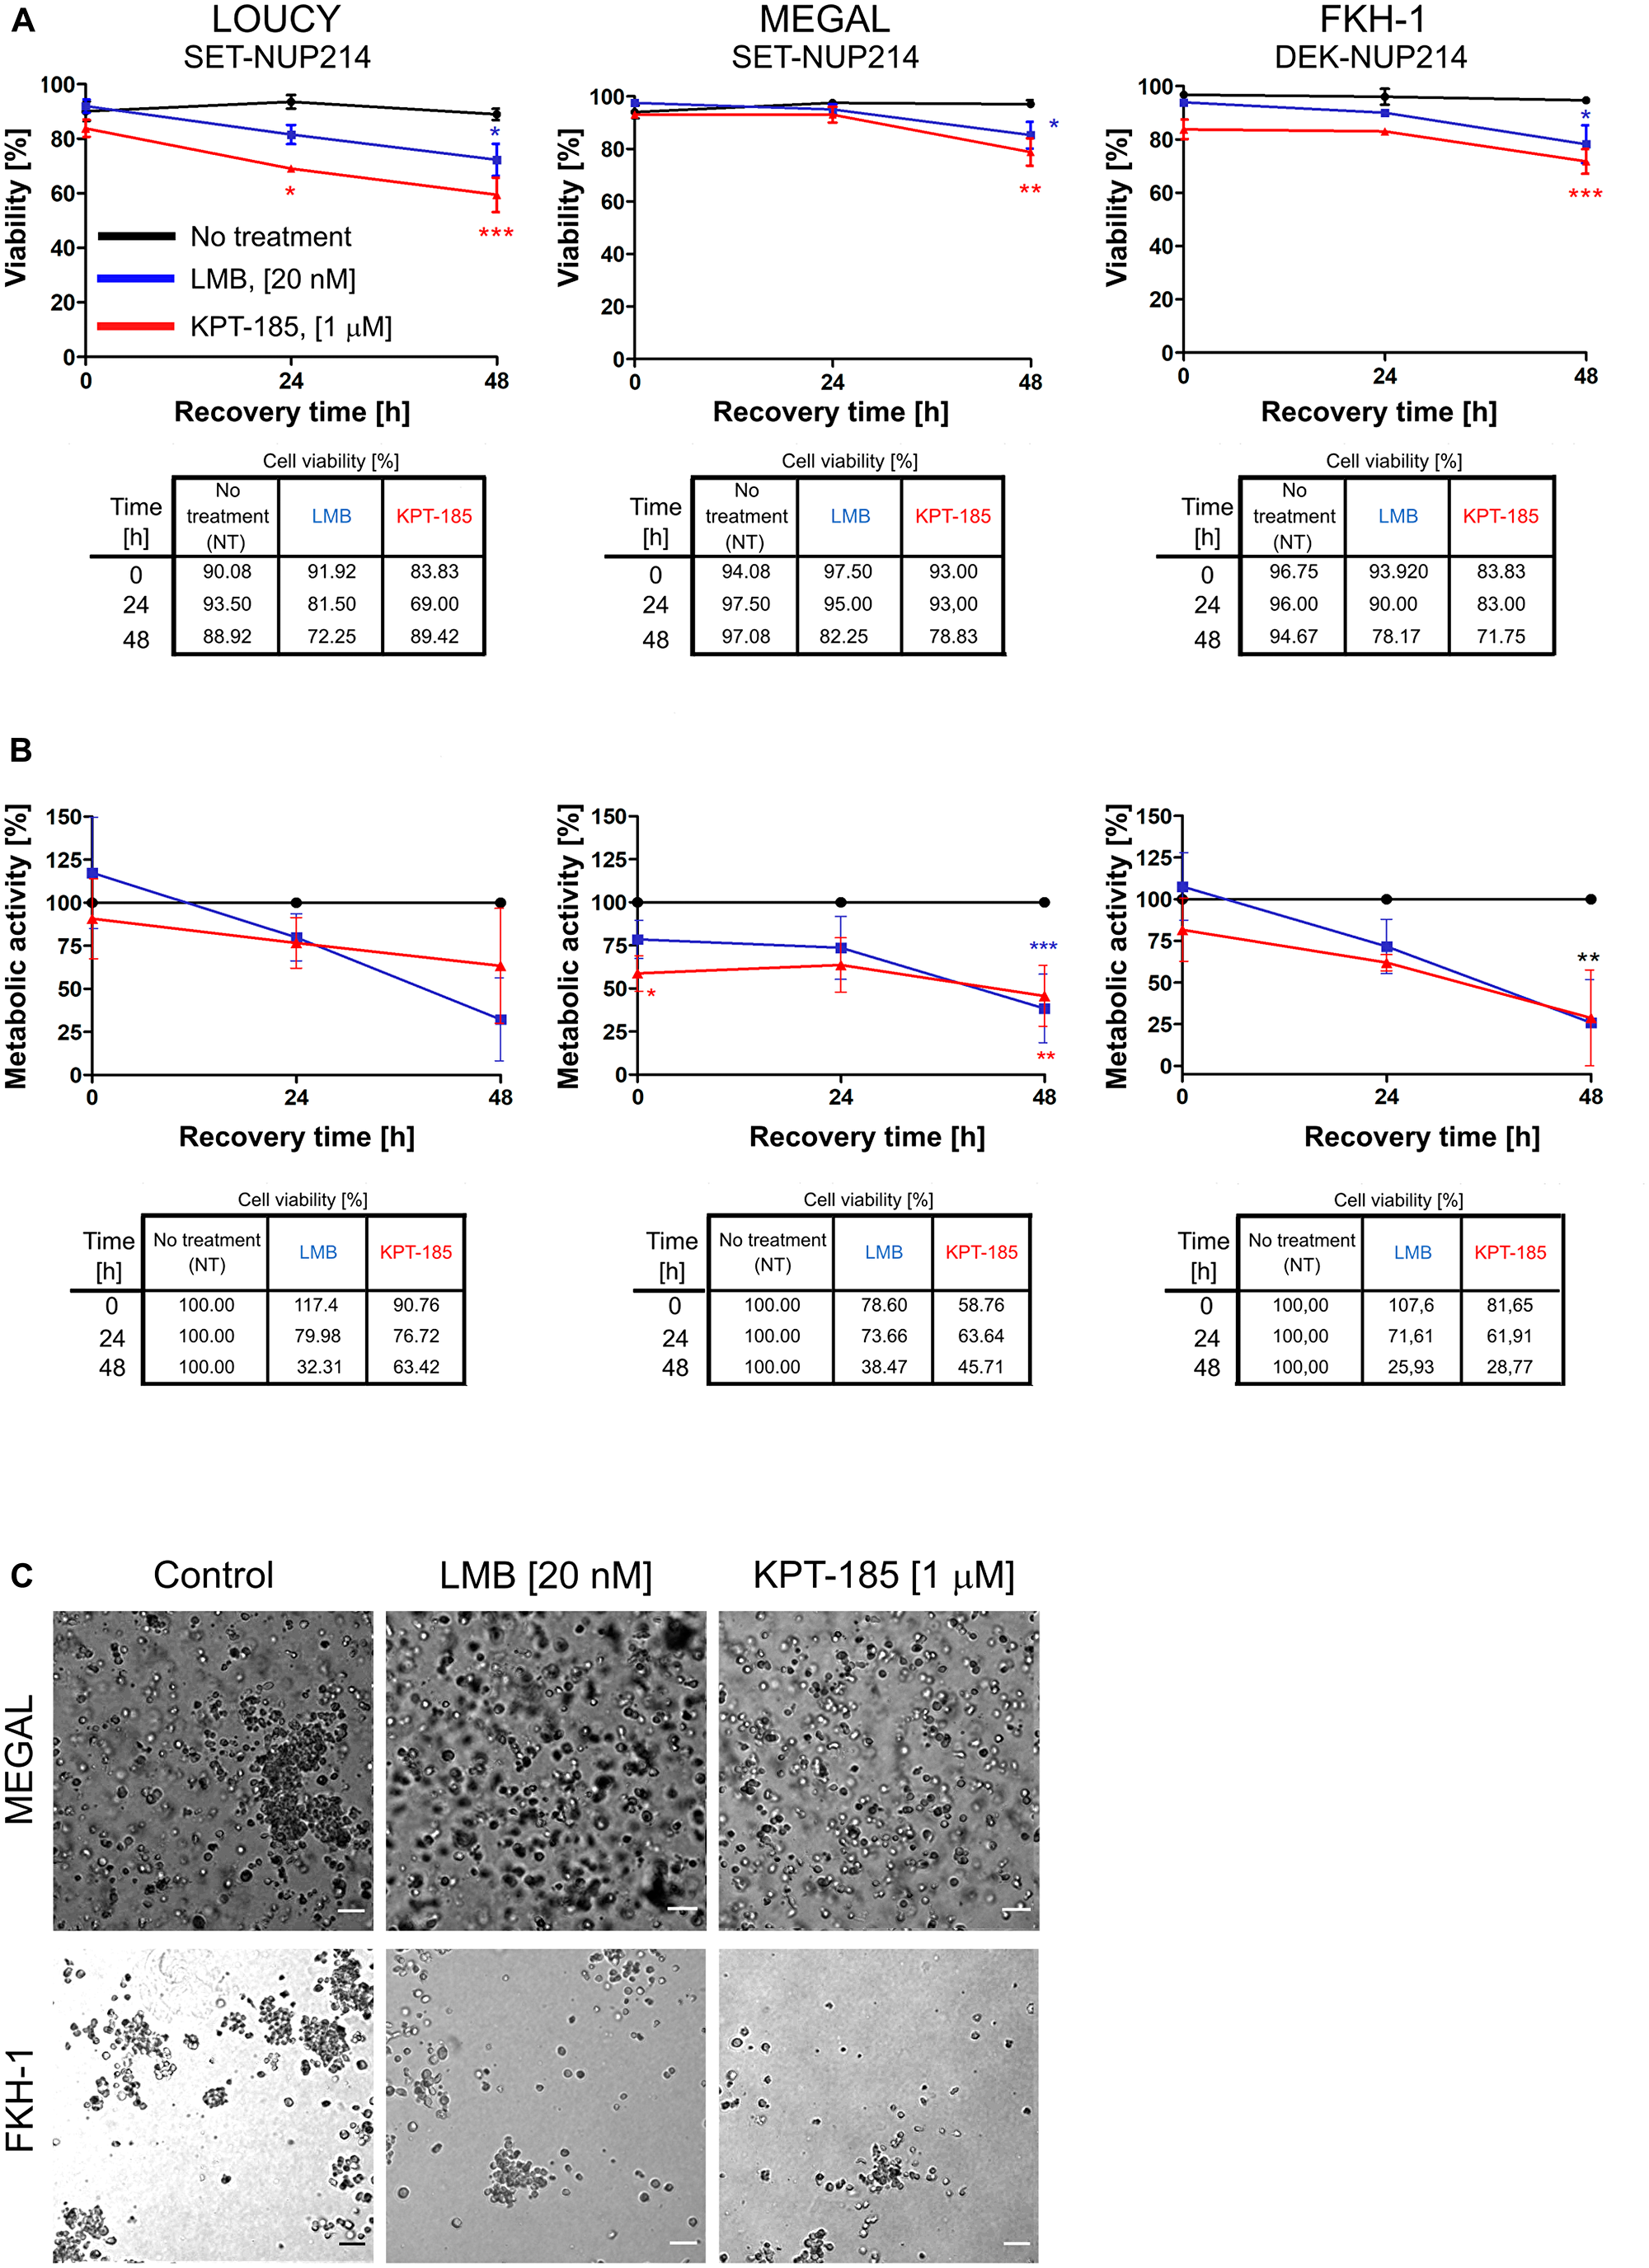 LMB and KPT-185 persistently affect cellular function.